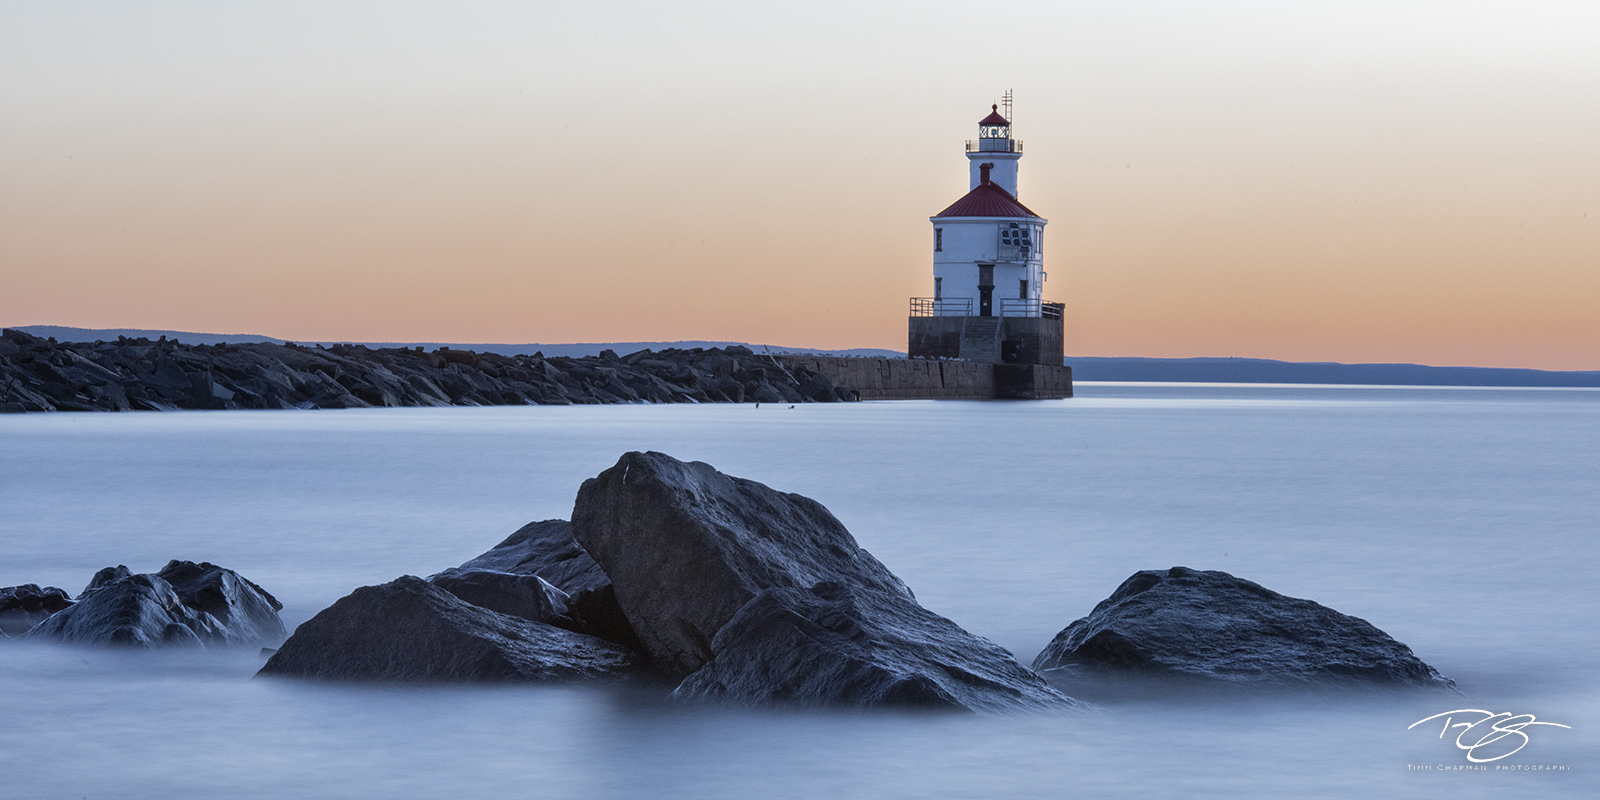 wisconsin point, light, lighthouse, panorama, rocks, rocky shoreline, mist, dusk, predawn, lake superior, sentry, beacon, photo